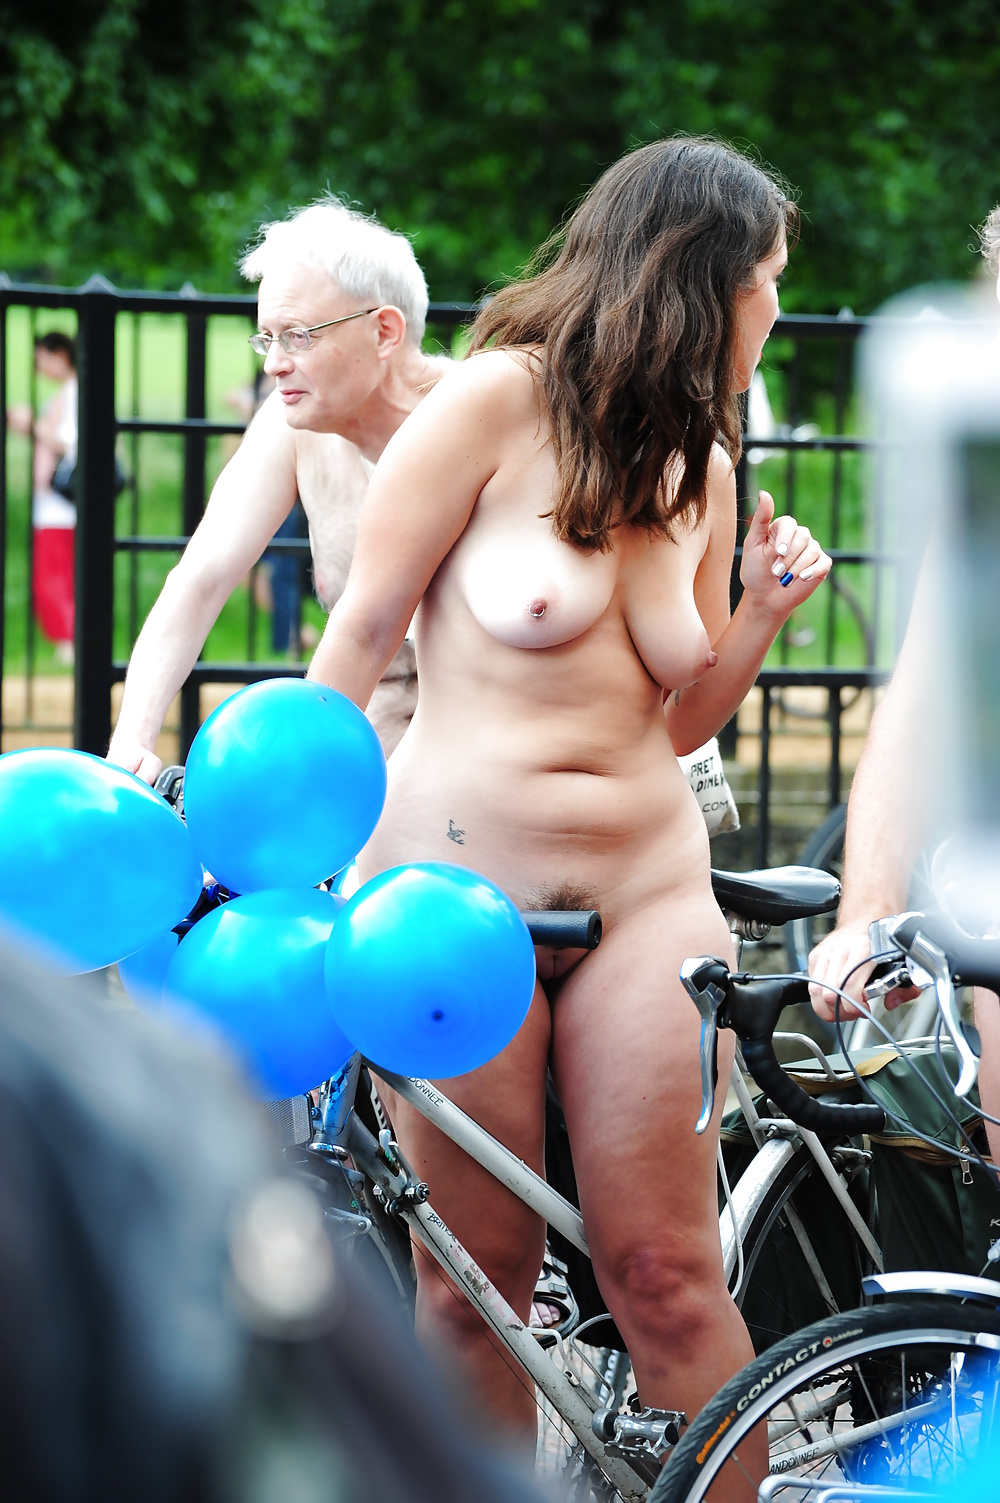 naked-milf-riding-a-bike-sex-sites-anal